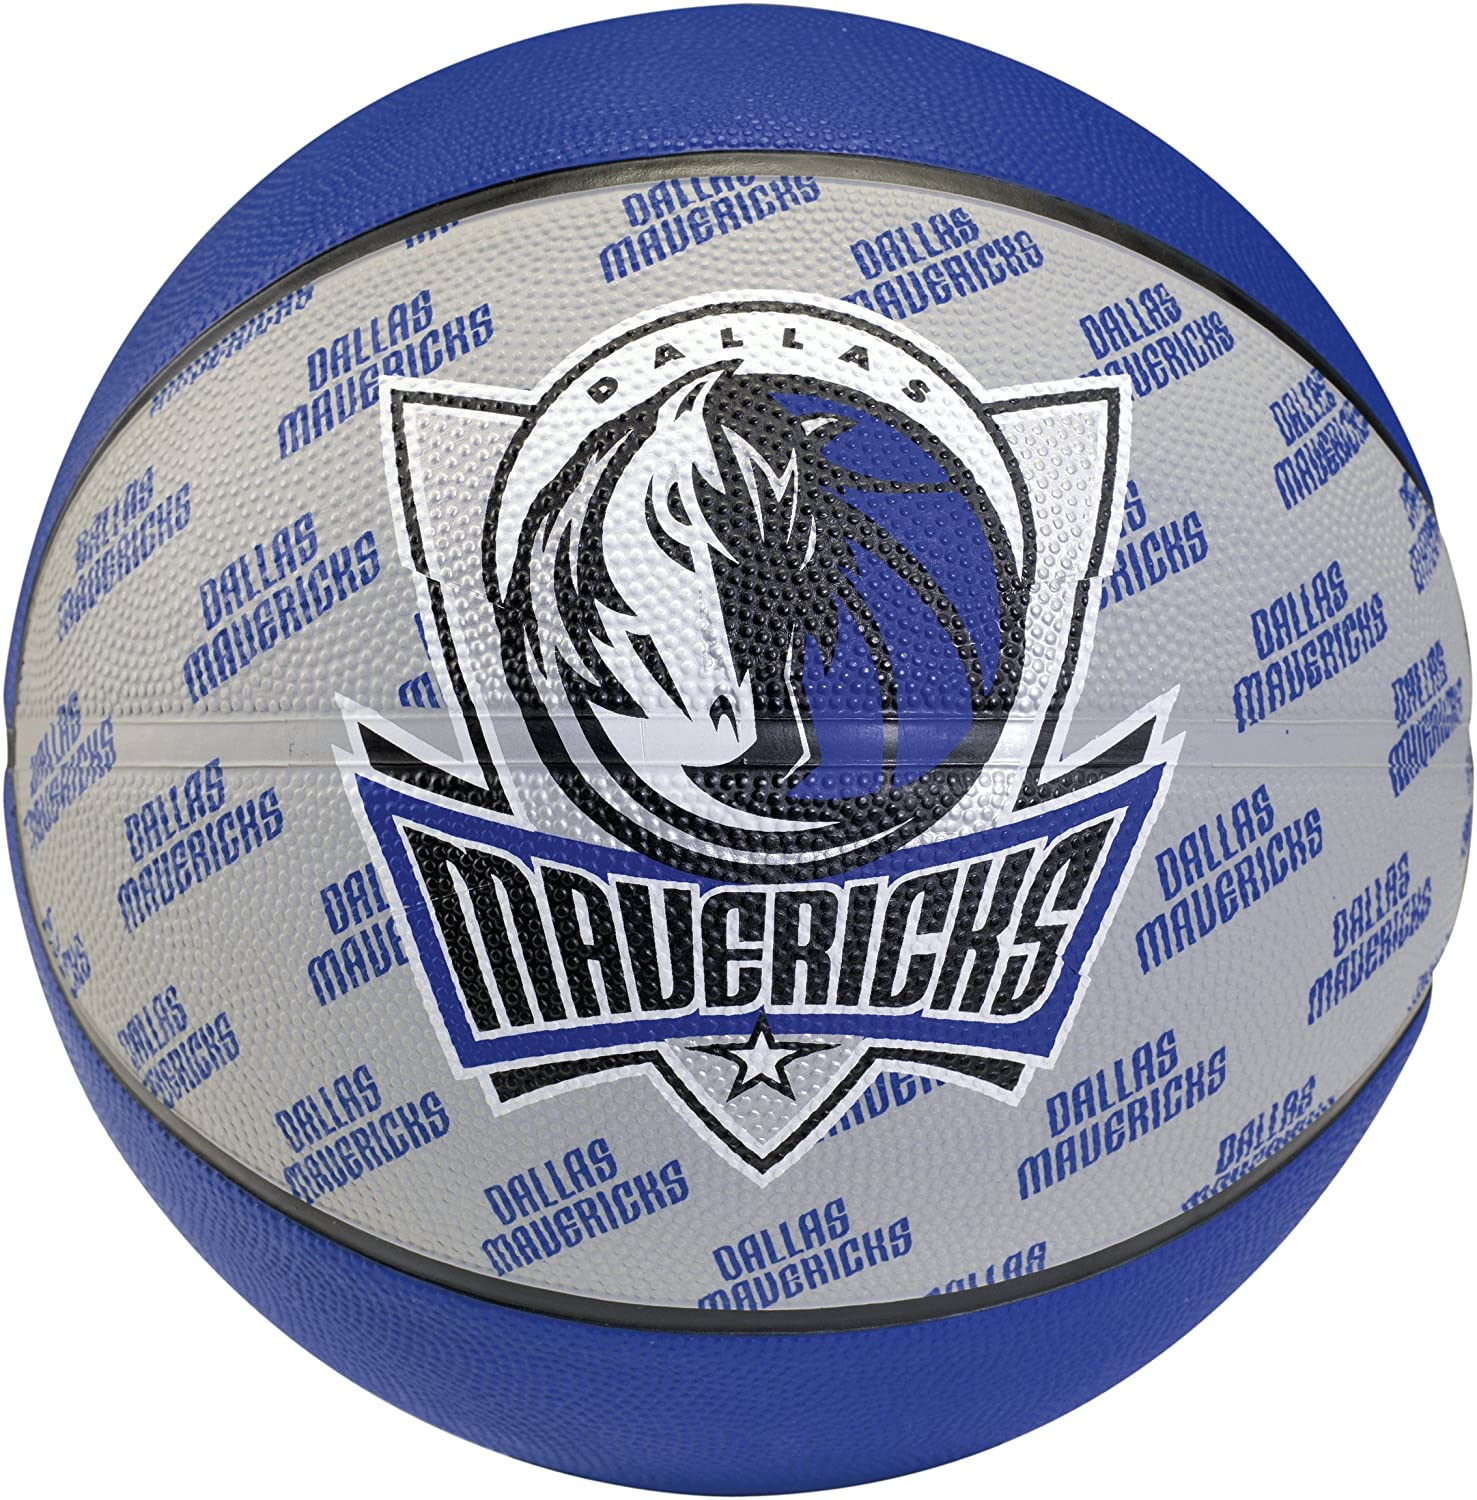 Spalding Team Ball Dallas Mavericks Blau 7 3001585011117